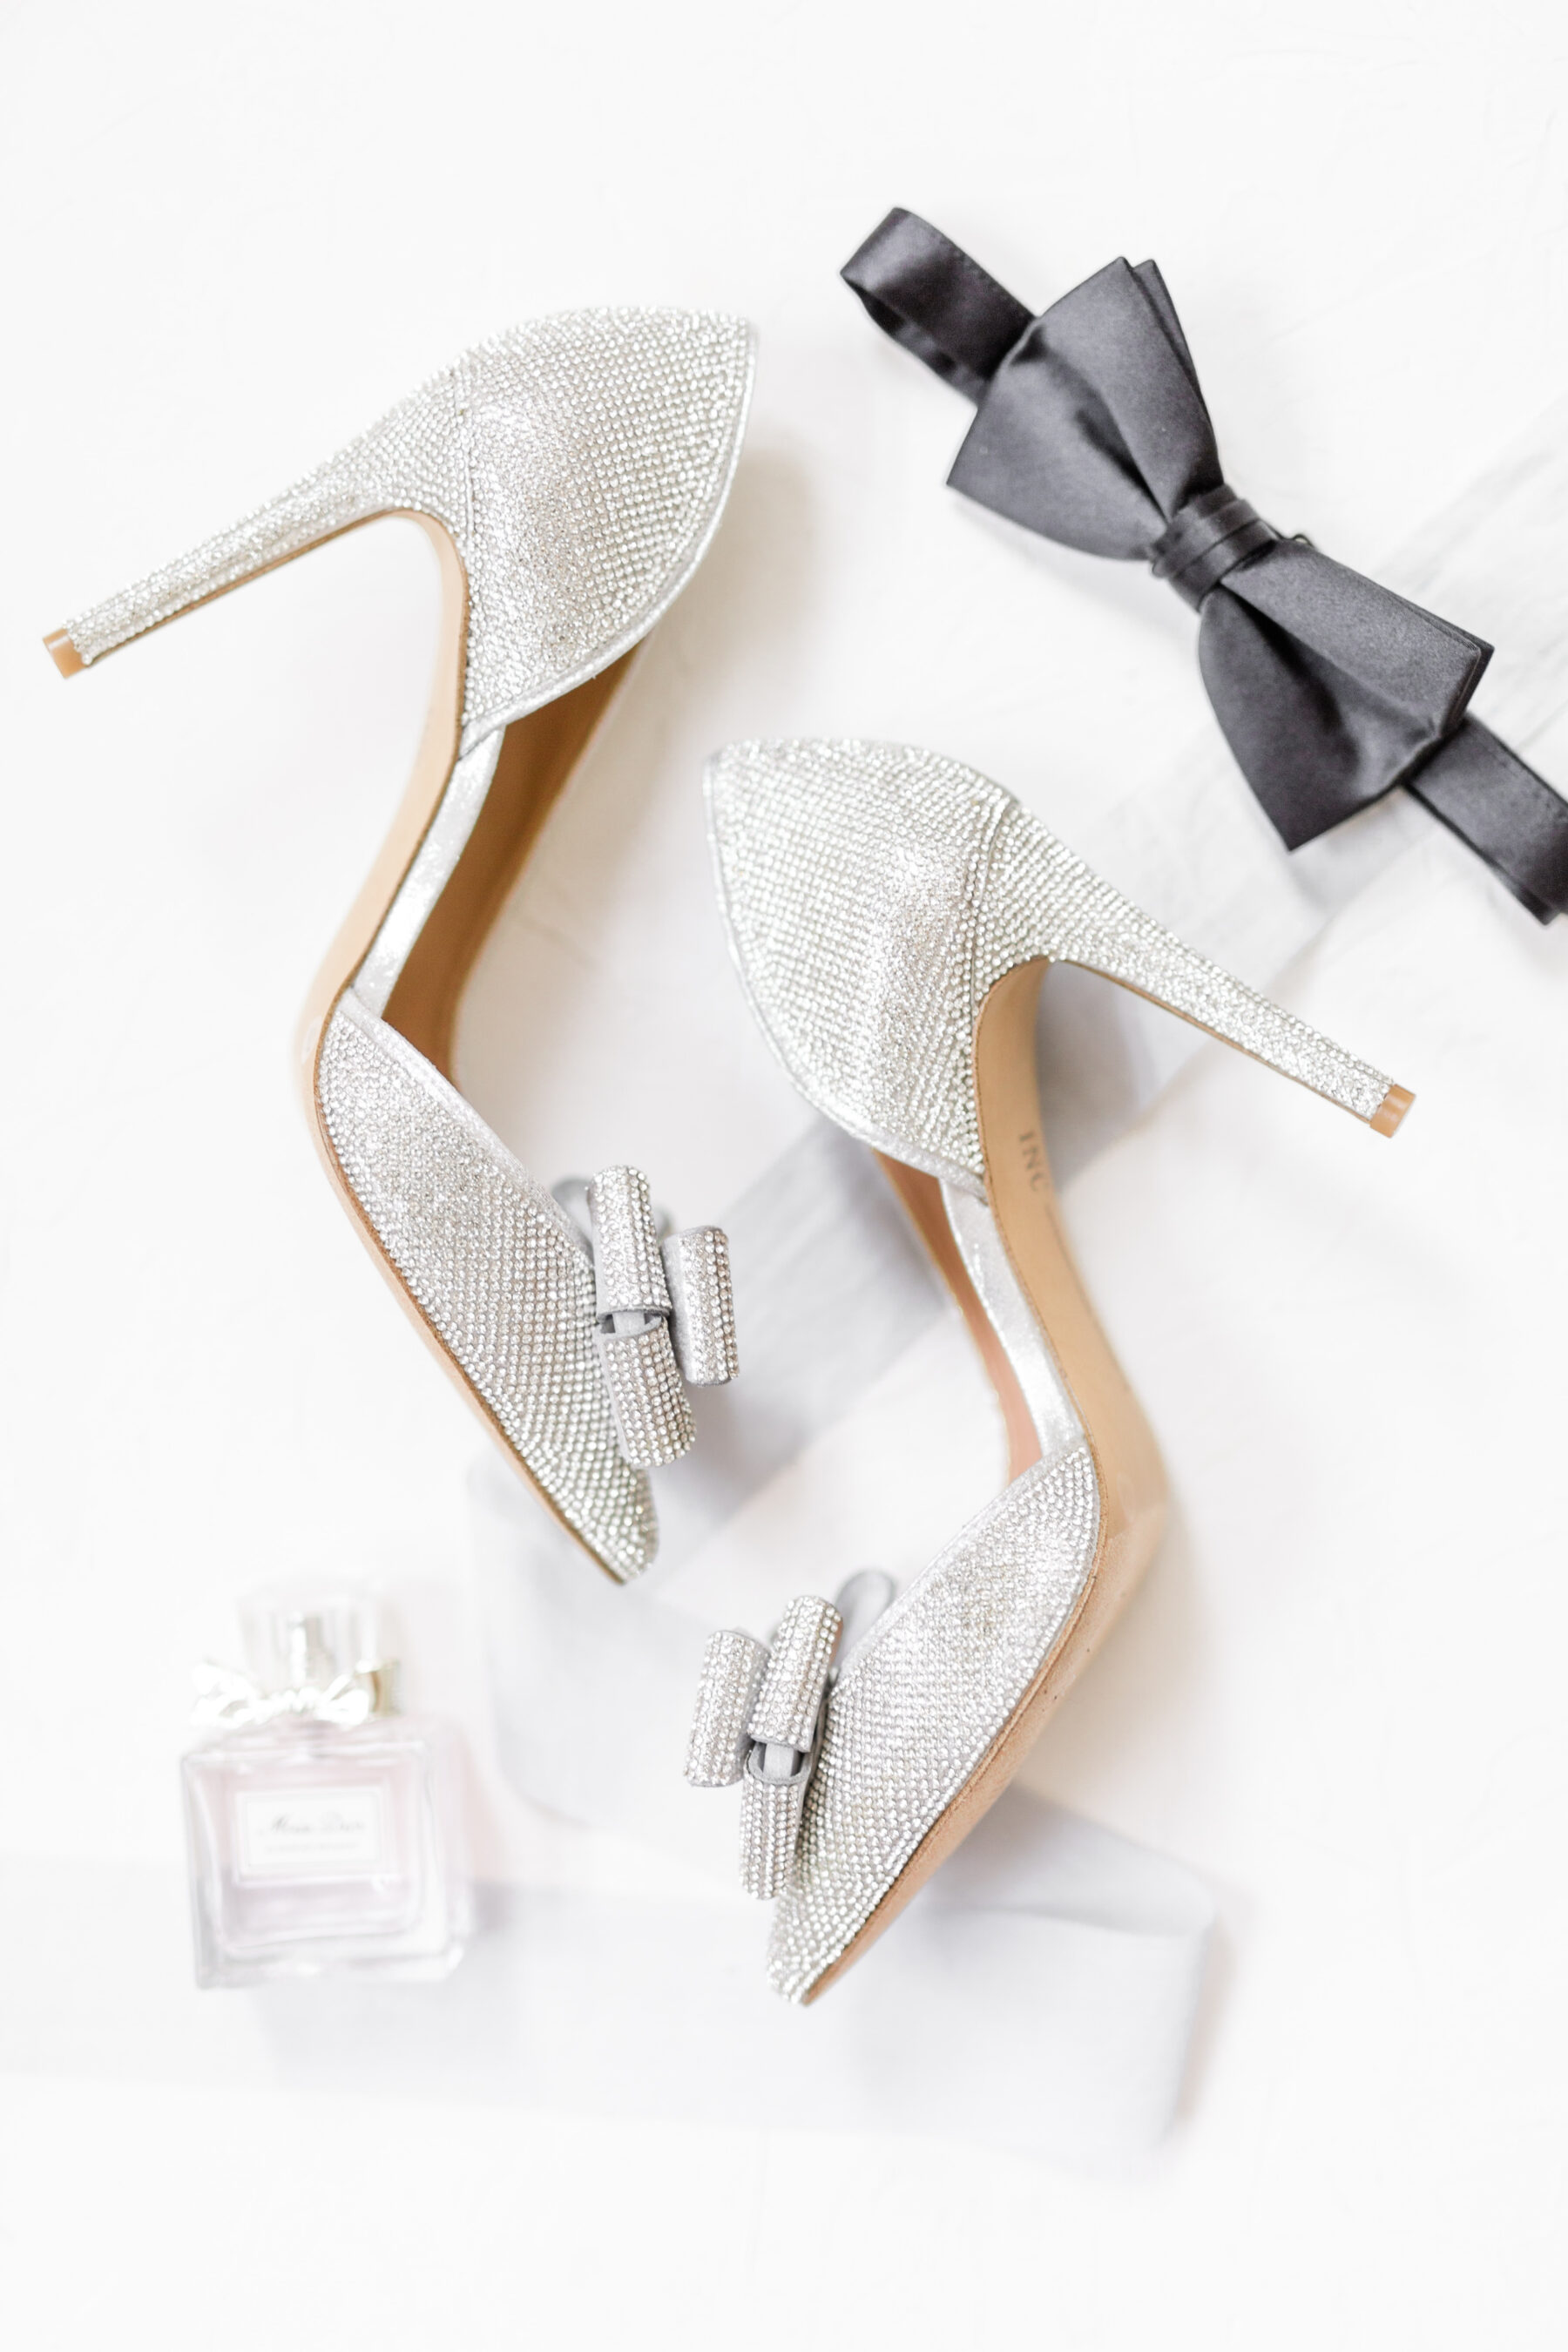 Sparkly silver wedding shoes: Classic, Yet Modern New Years Eve Wedding Inspiration featured on Nashville Bride Guide